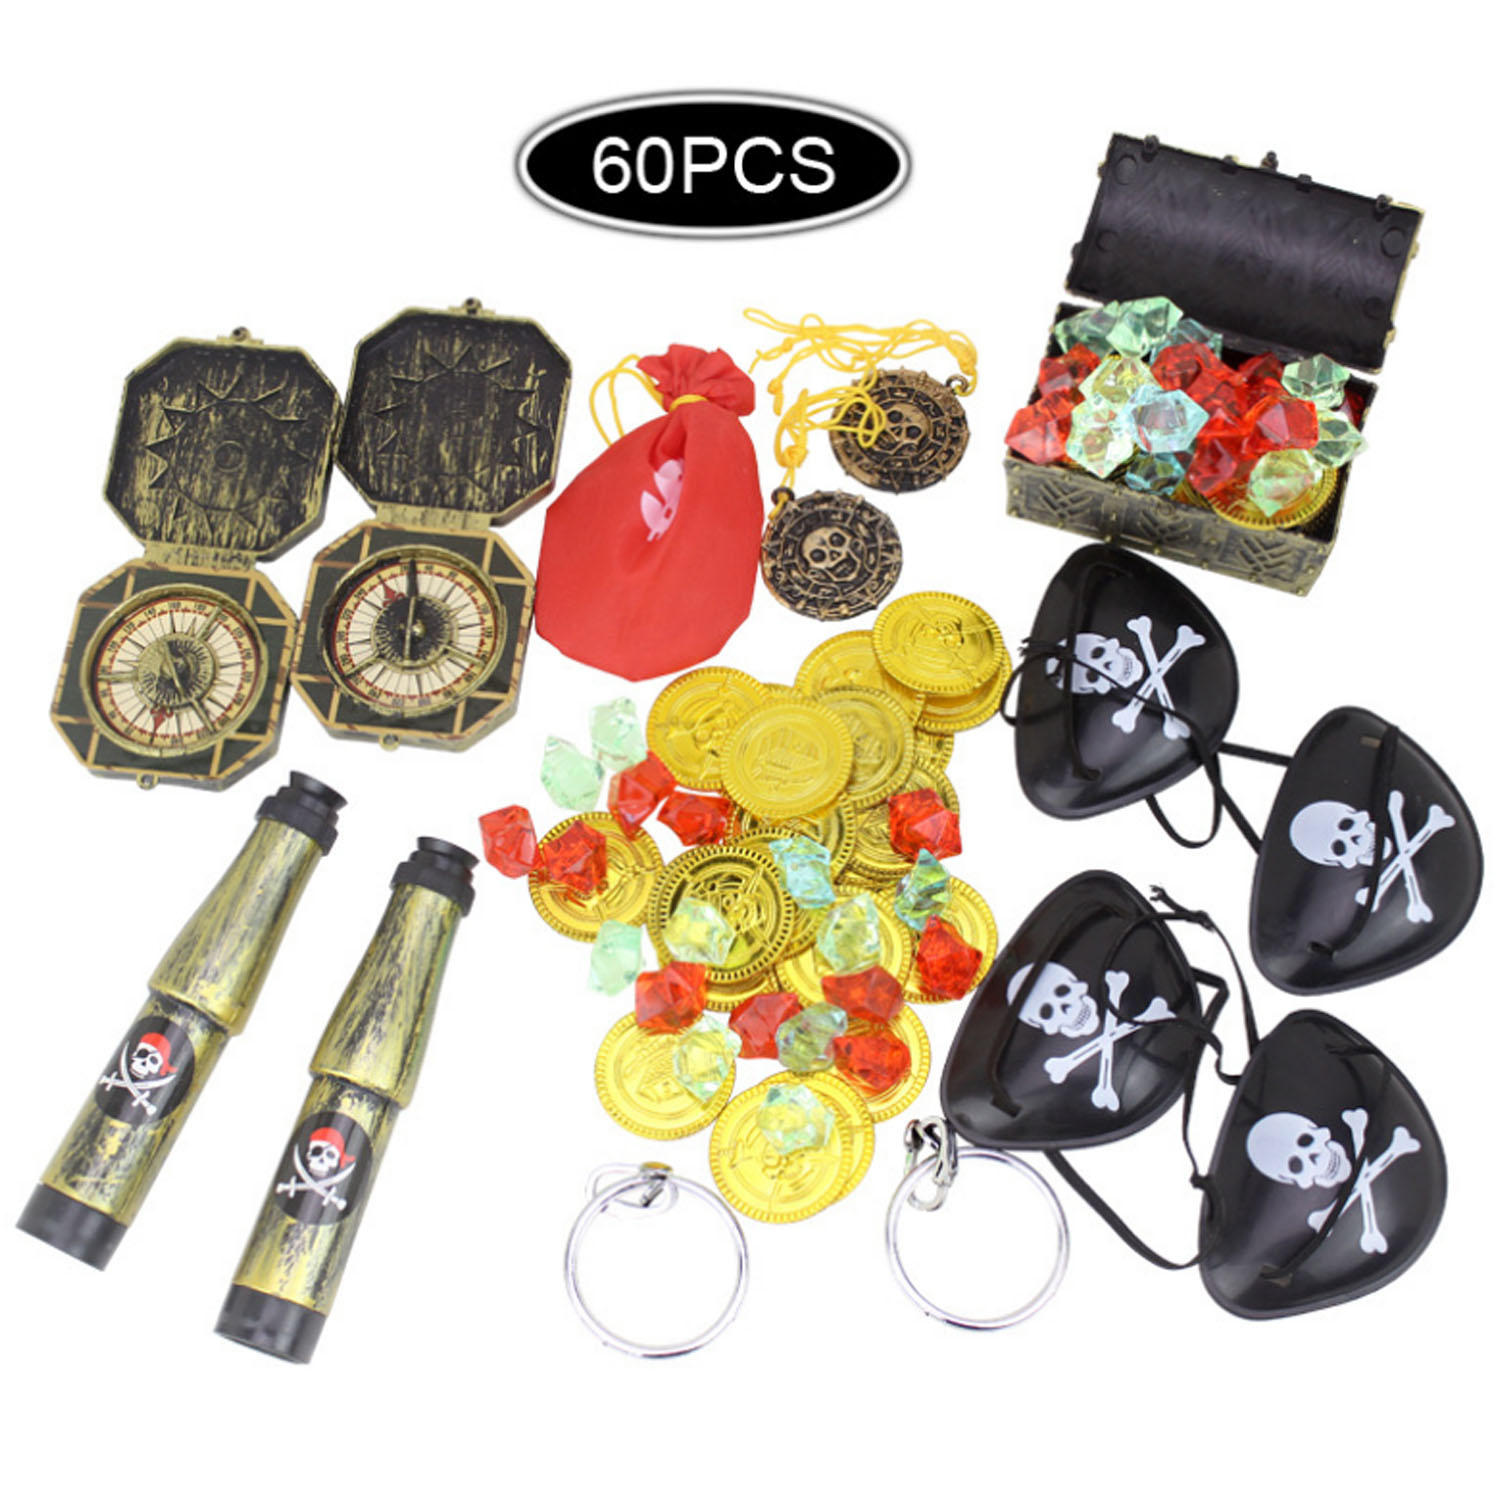 Besegad Kids Pirate Party Supplies Toys Gold Coins Compass Treasure Chest Box Telescopes Gems Eye Patches Earrings Medallions